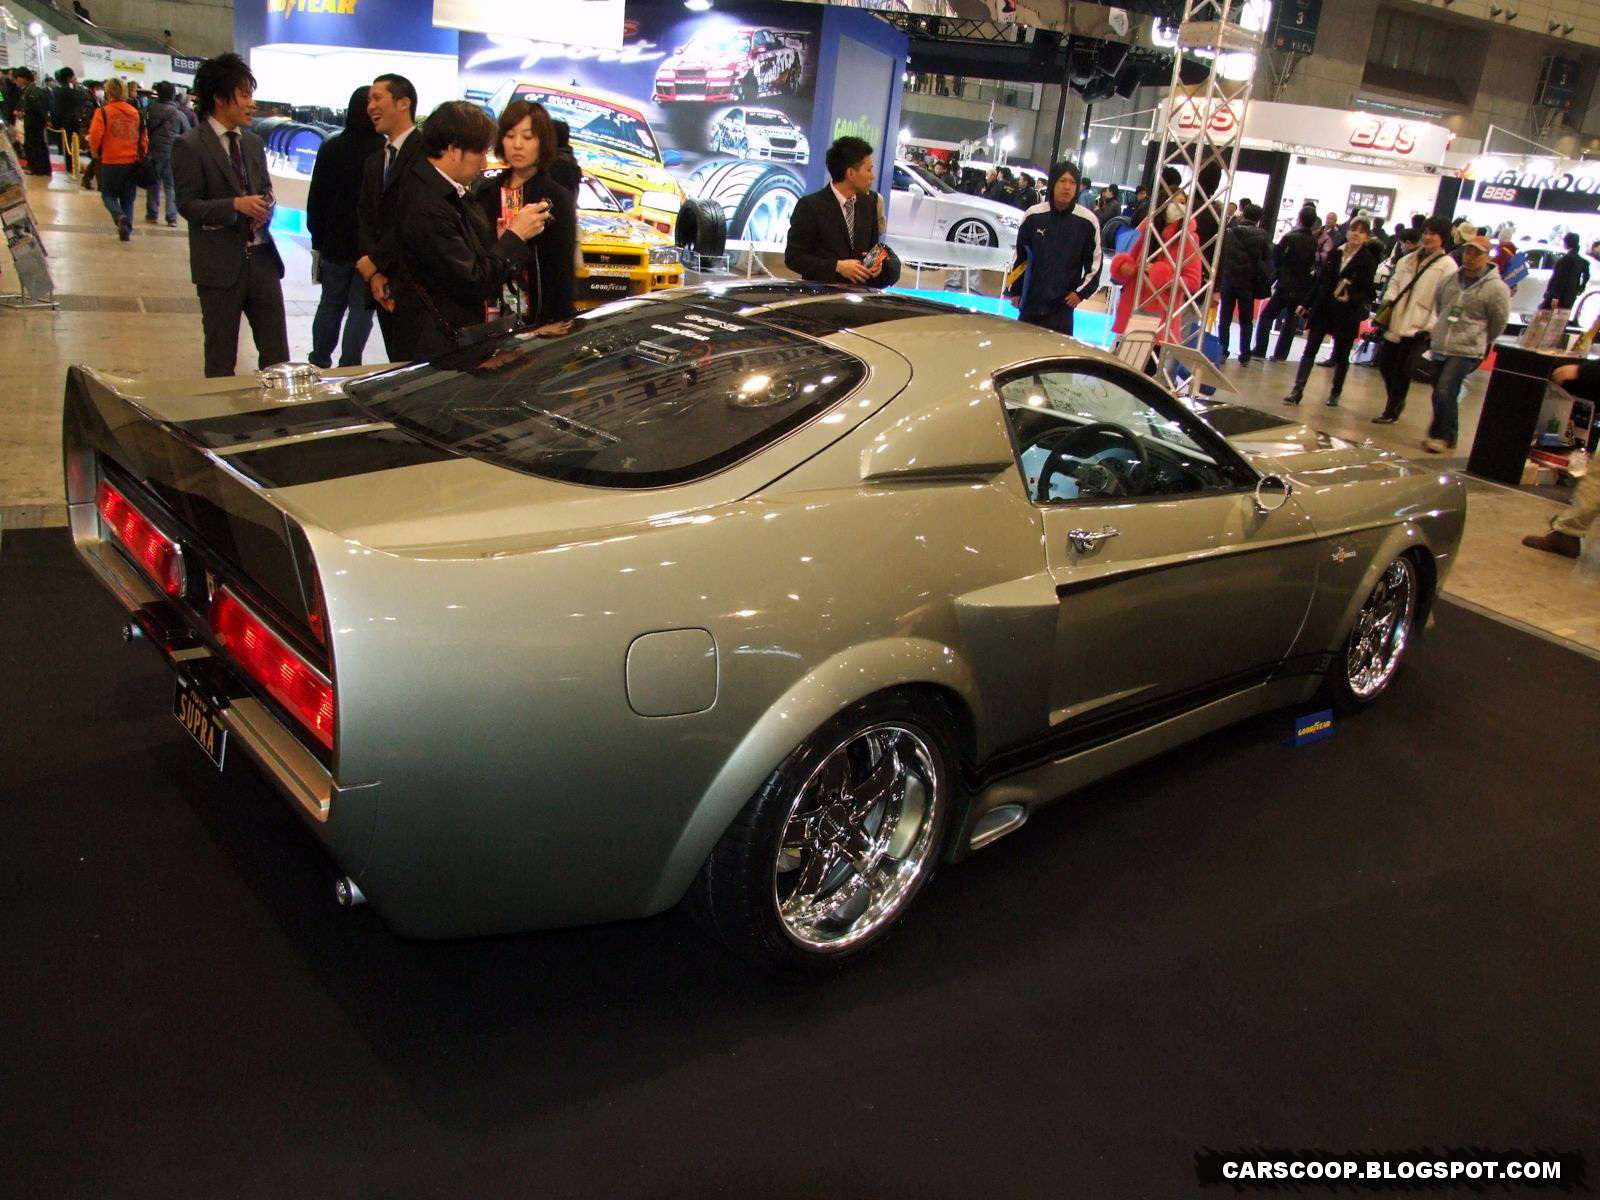 Mustanga Shelby GT500 Eleanor Tokio 2010 replika